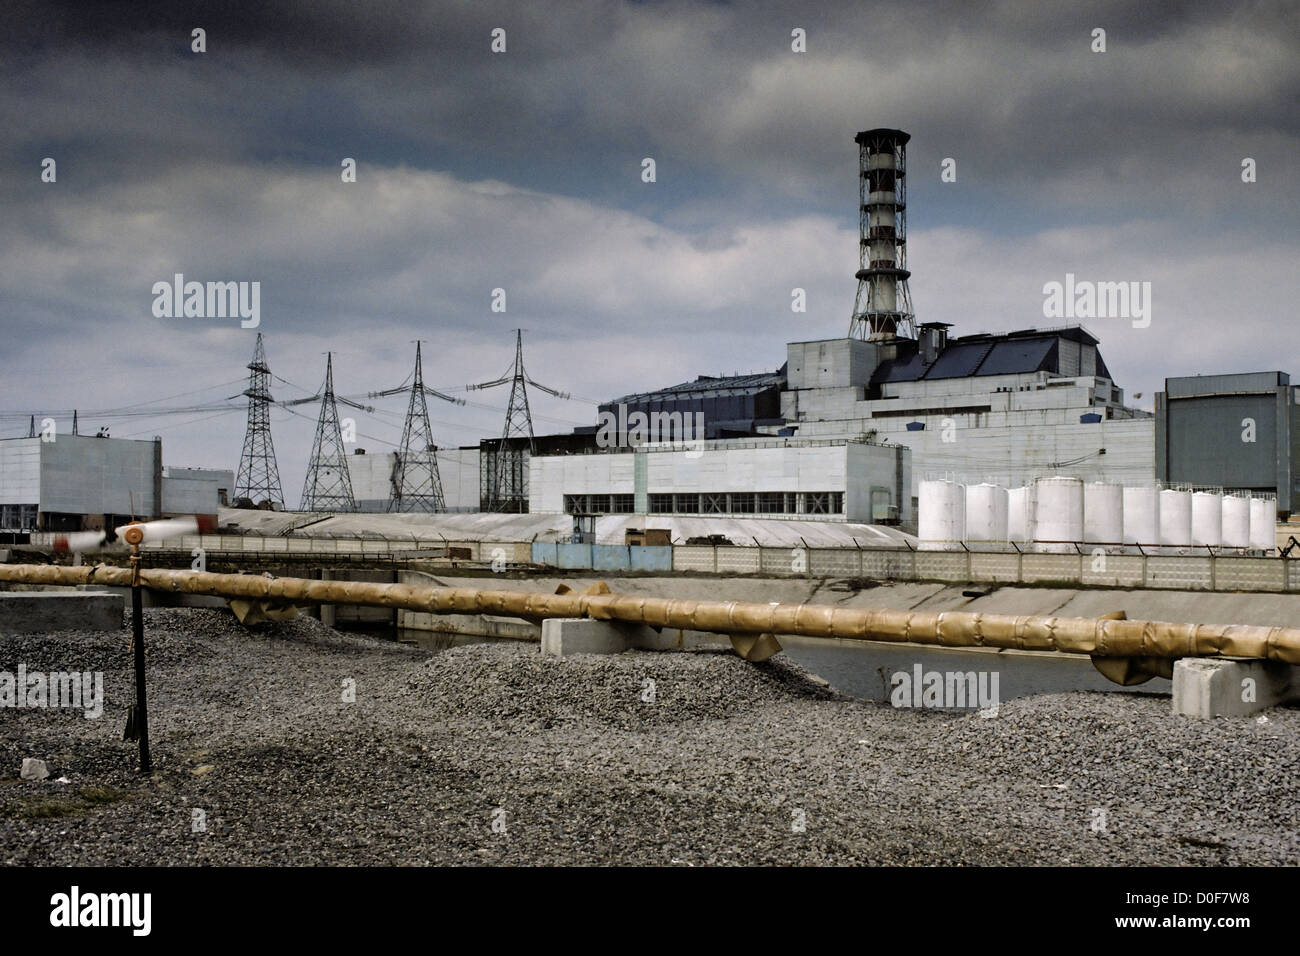 The damaged Chernobyl nuclear reactor. Chernobyl was the site of one of the worst nuclear accidents in history, - Stock Image